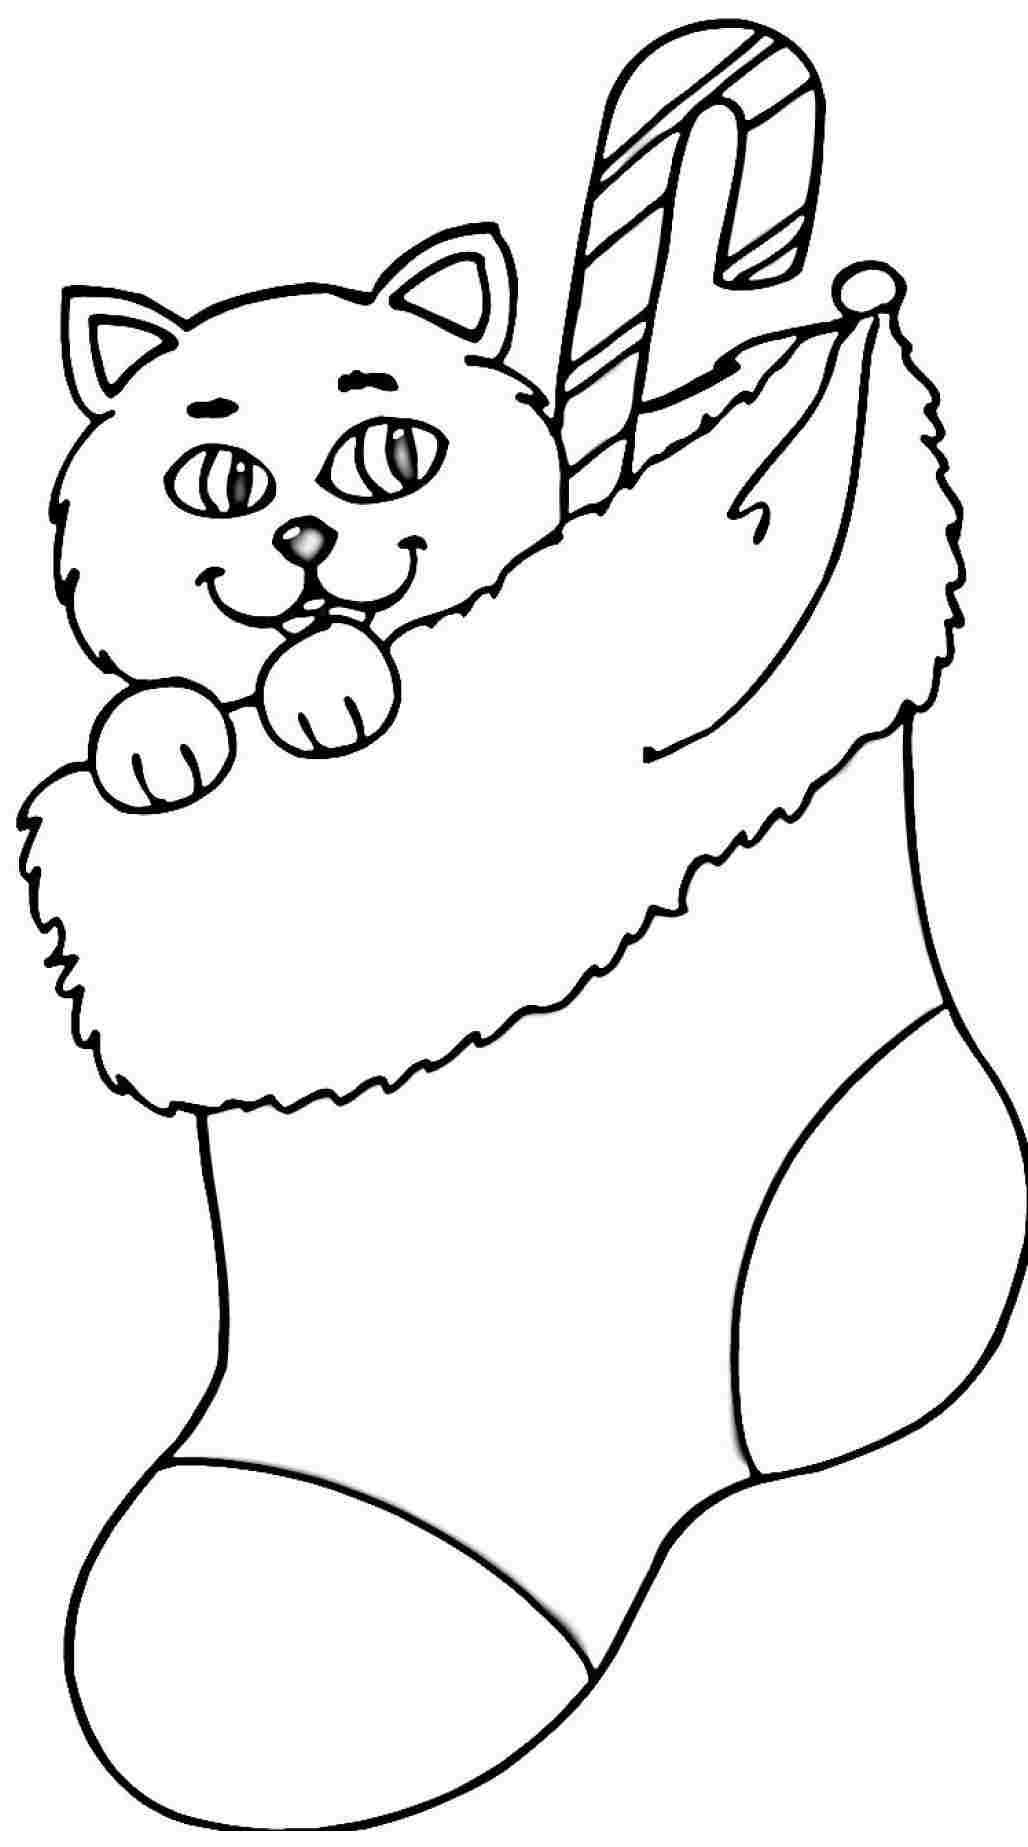 coloring pages stocking - photo#27